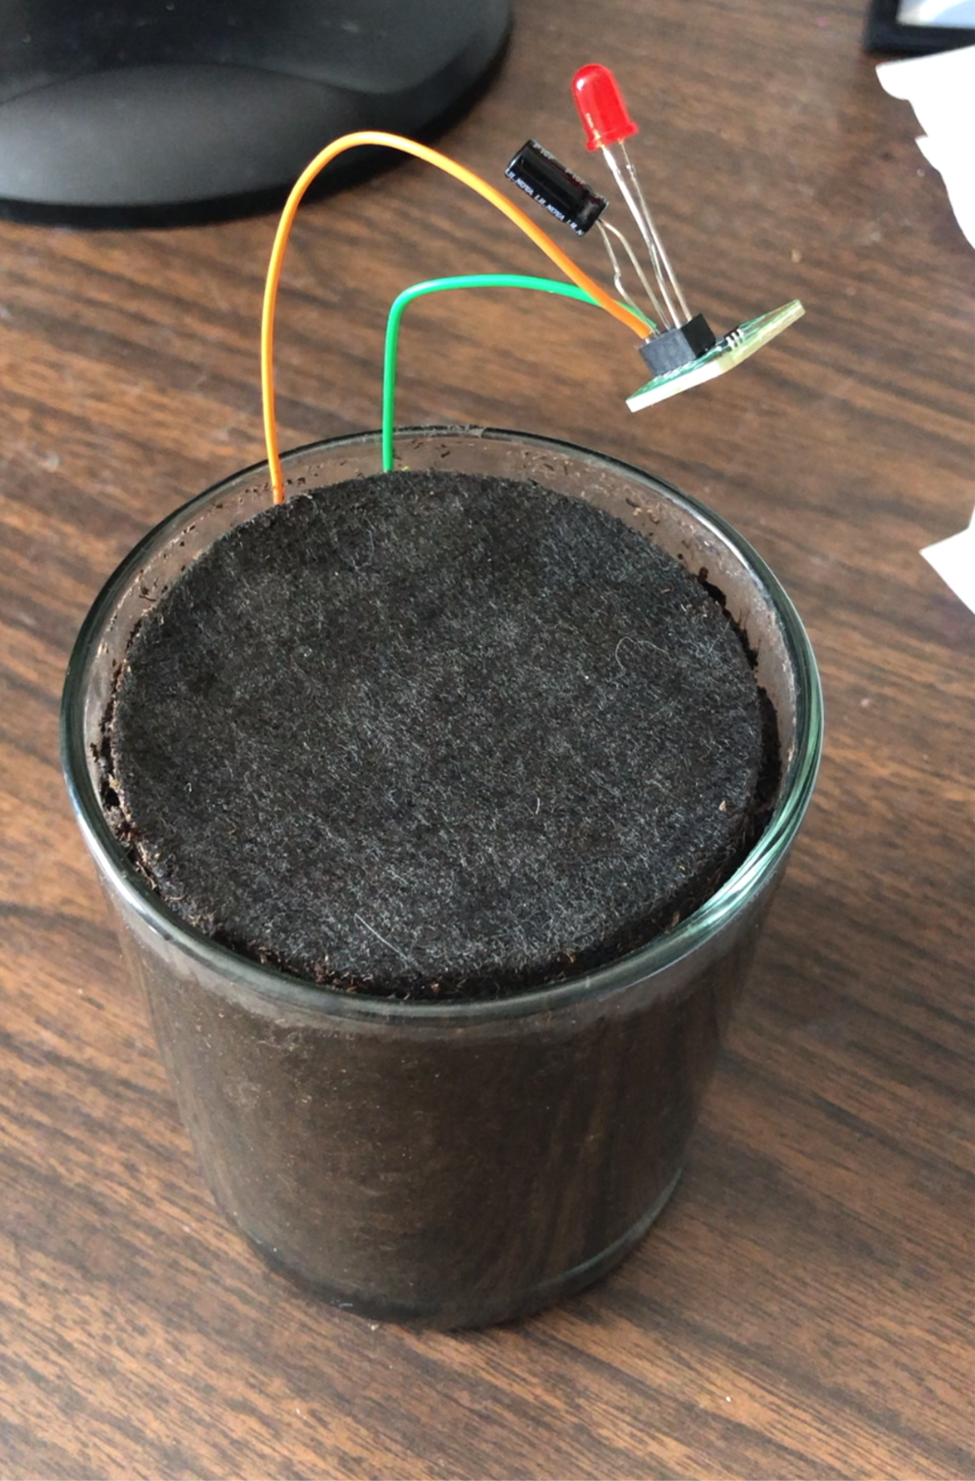 An image of soil in a small glass vase with wires and a blinker LED board coming out of it.